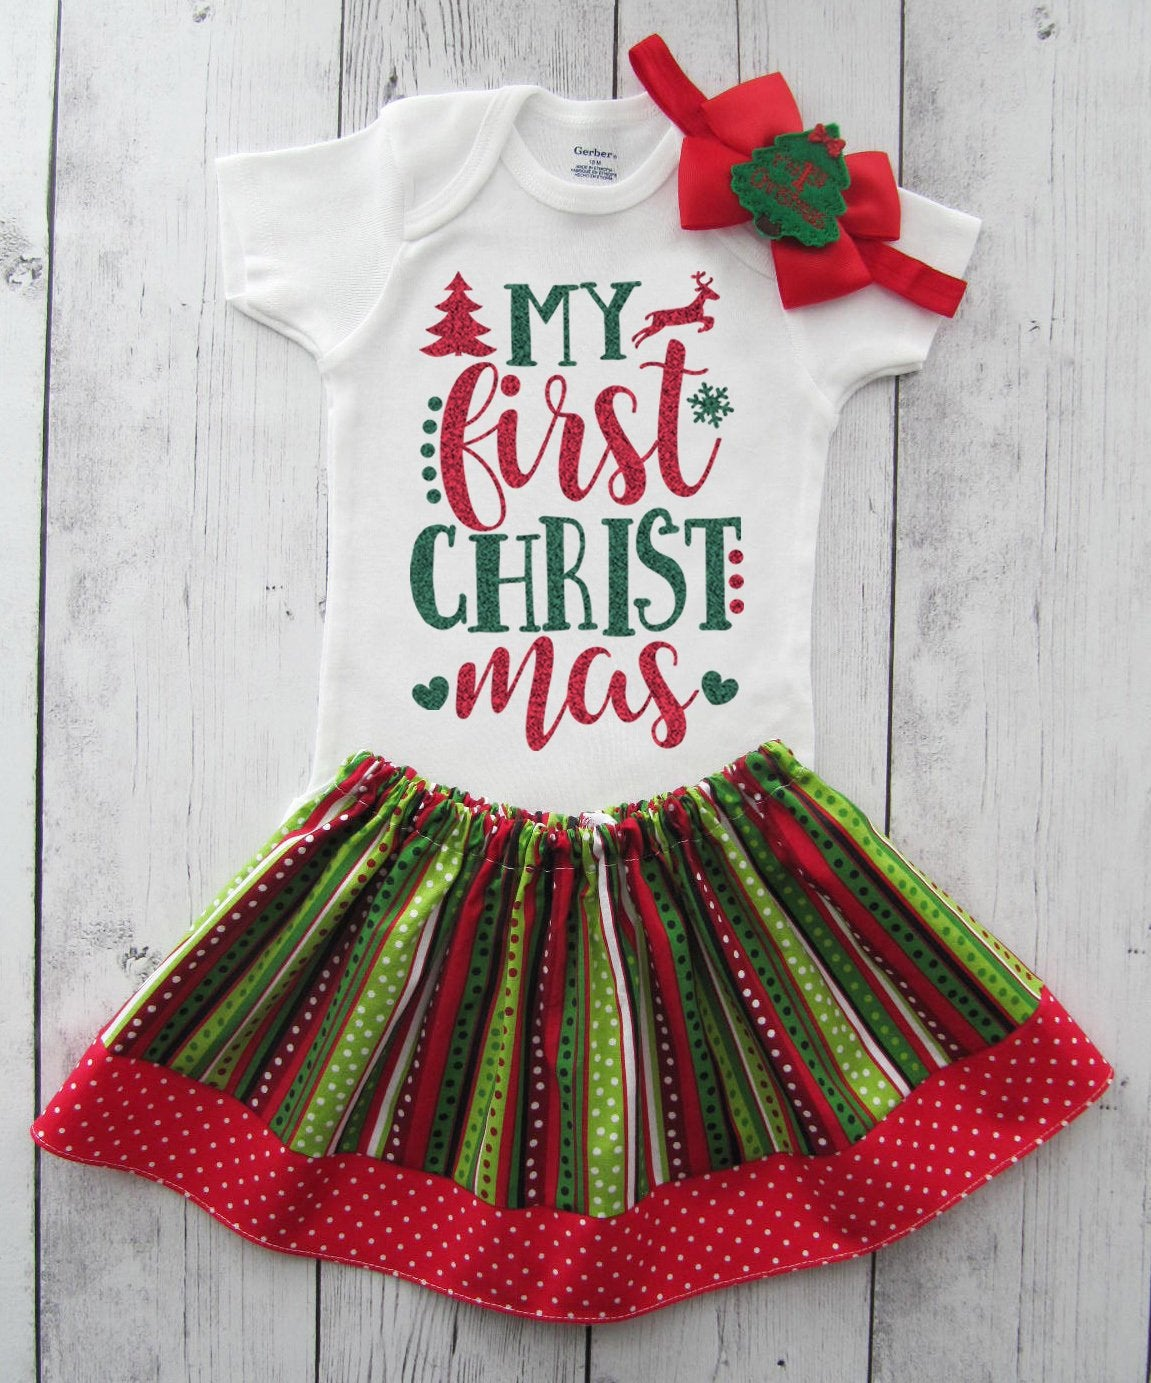 My First Christmas Dress for Baby Girl in red and green stripes - 1st xmas girl, babys first christmas outfit, ugly christmas sweater